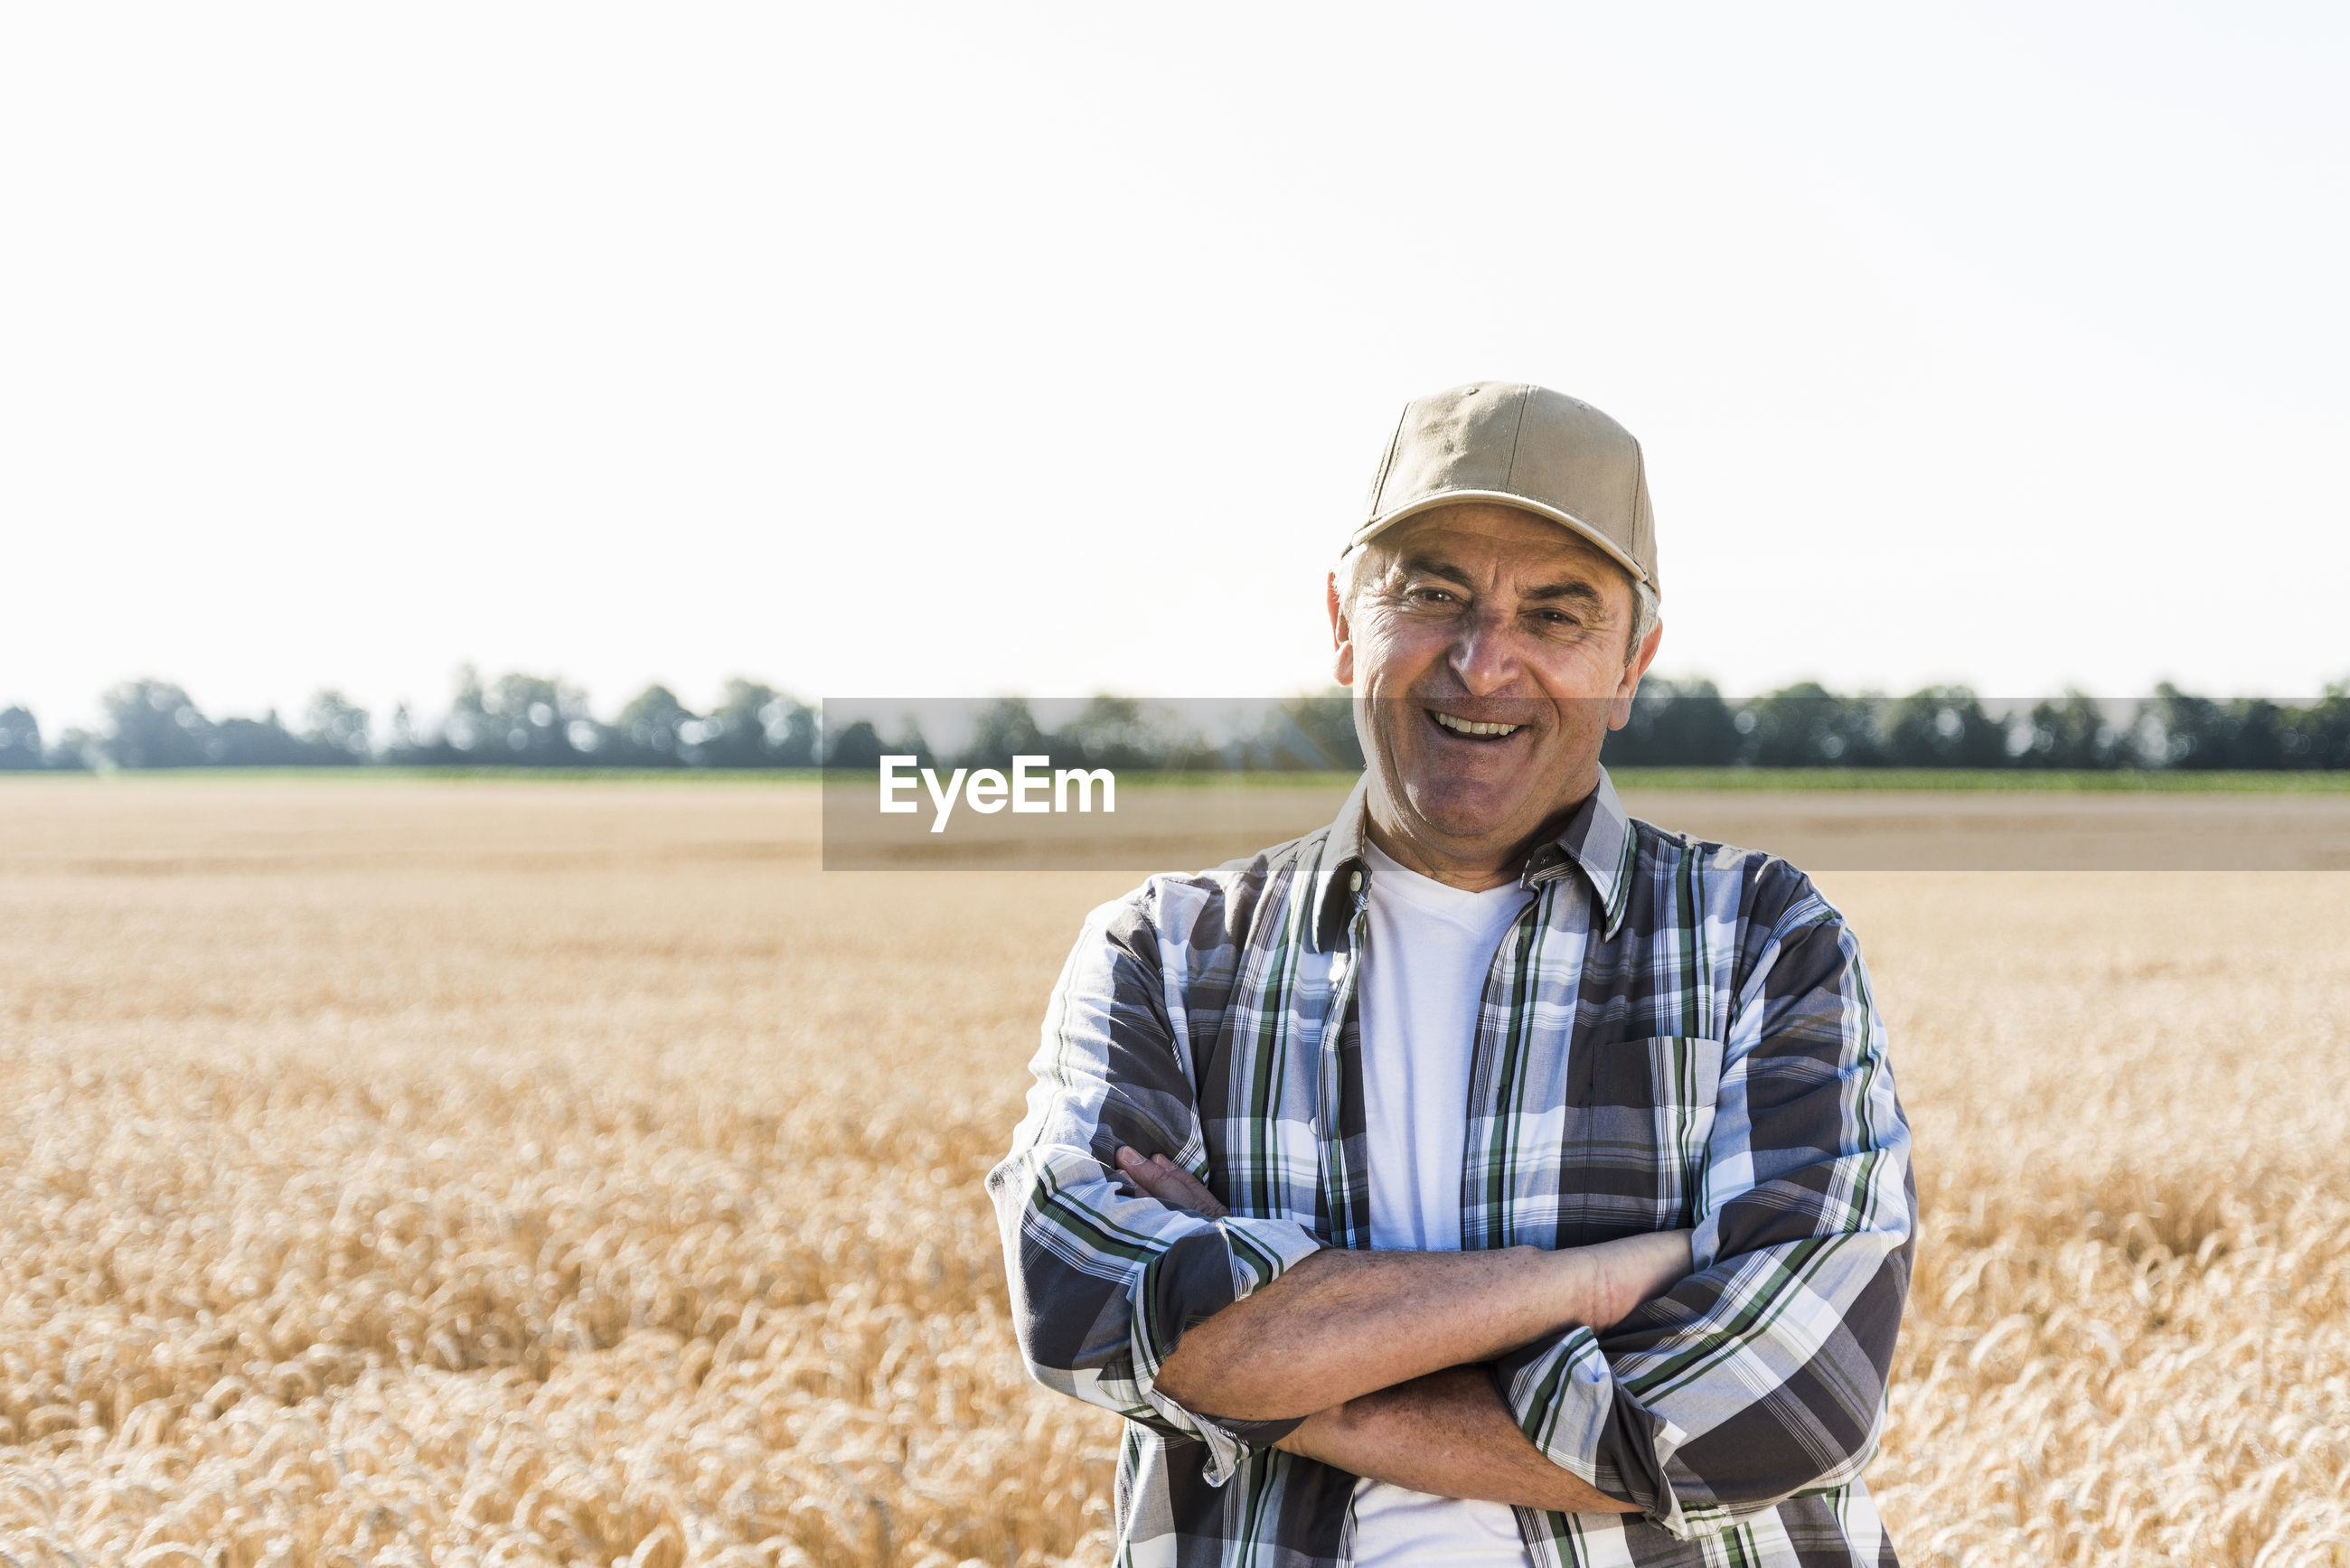 PORTRAIT OF SMILING YOUNG MAN STANDING IN FIELD